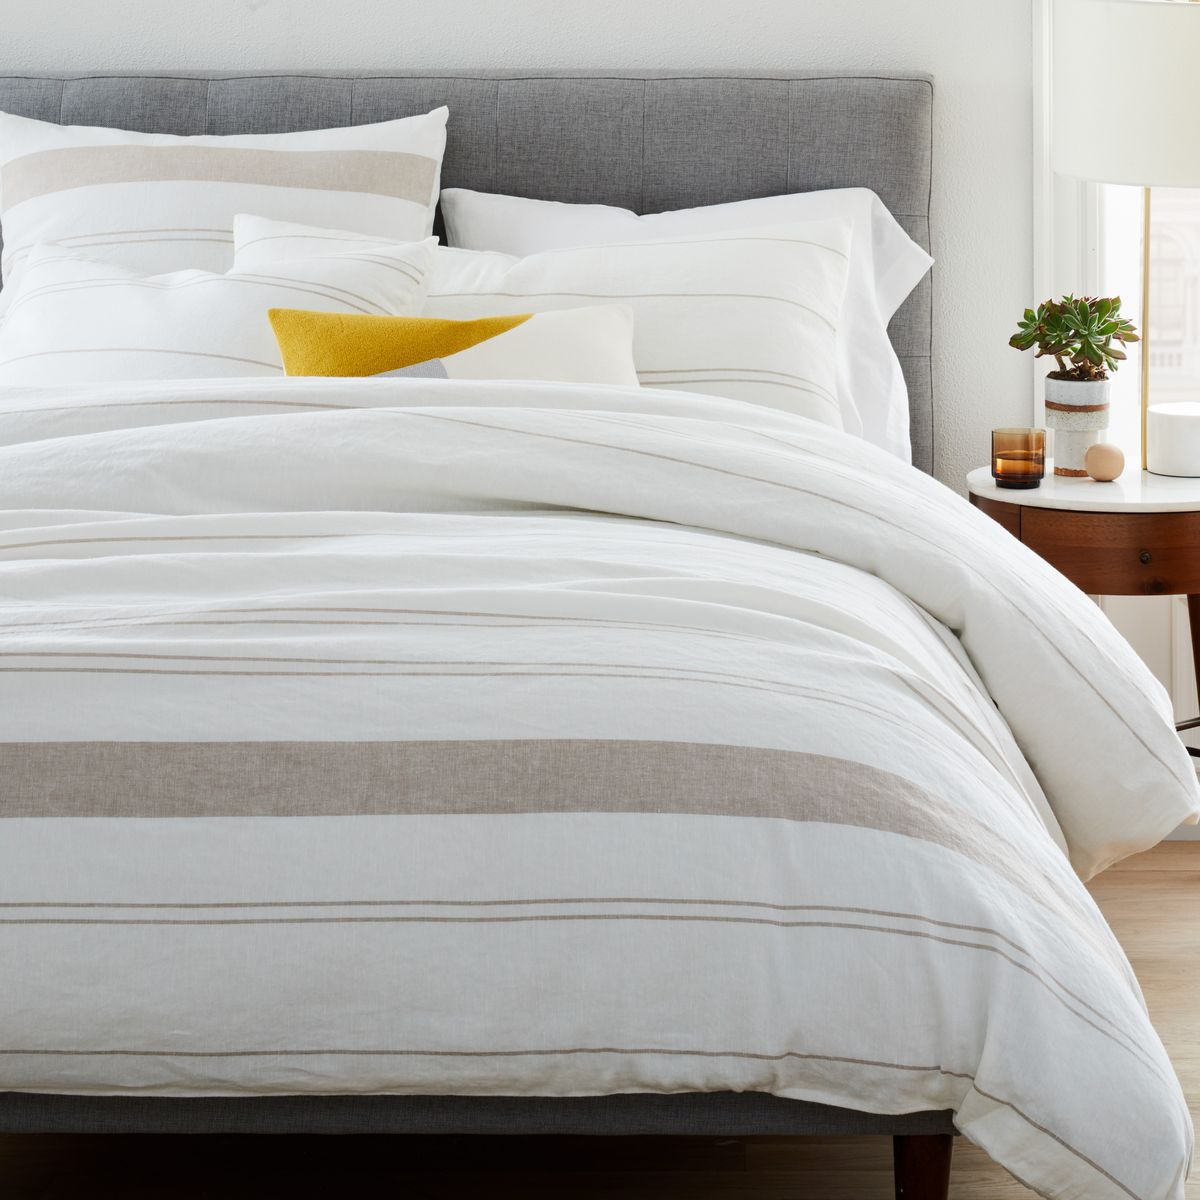 Neutral colored duvet and coverlet on bed.